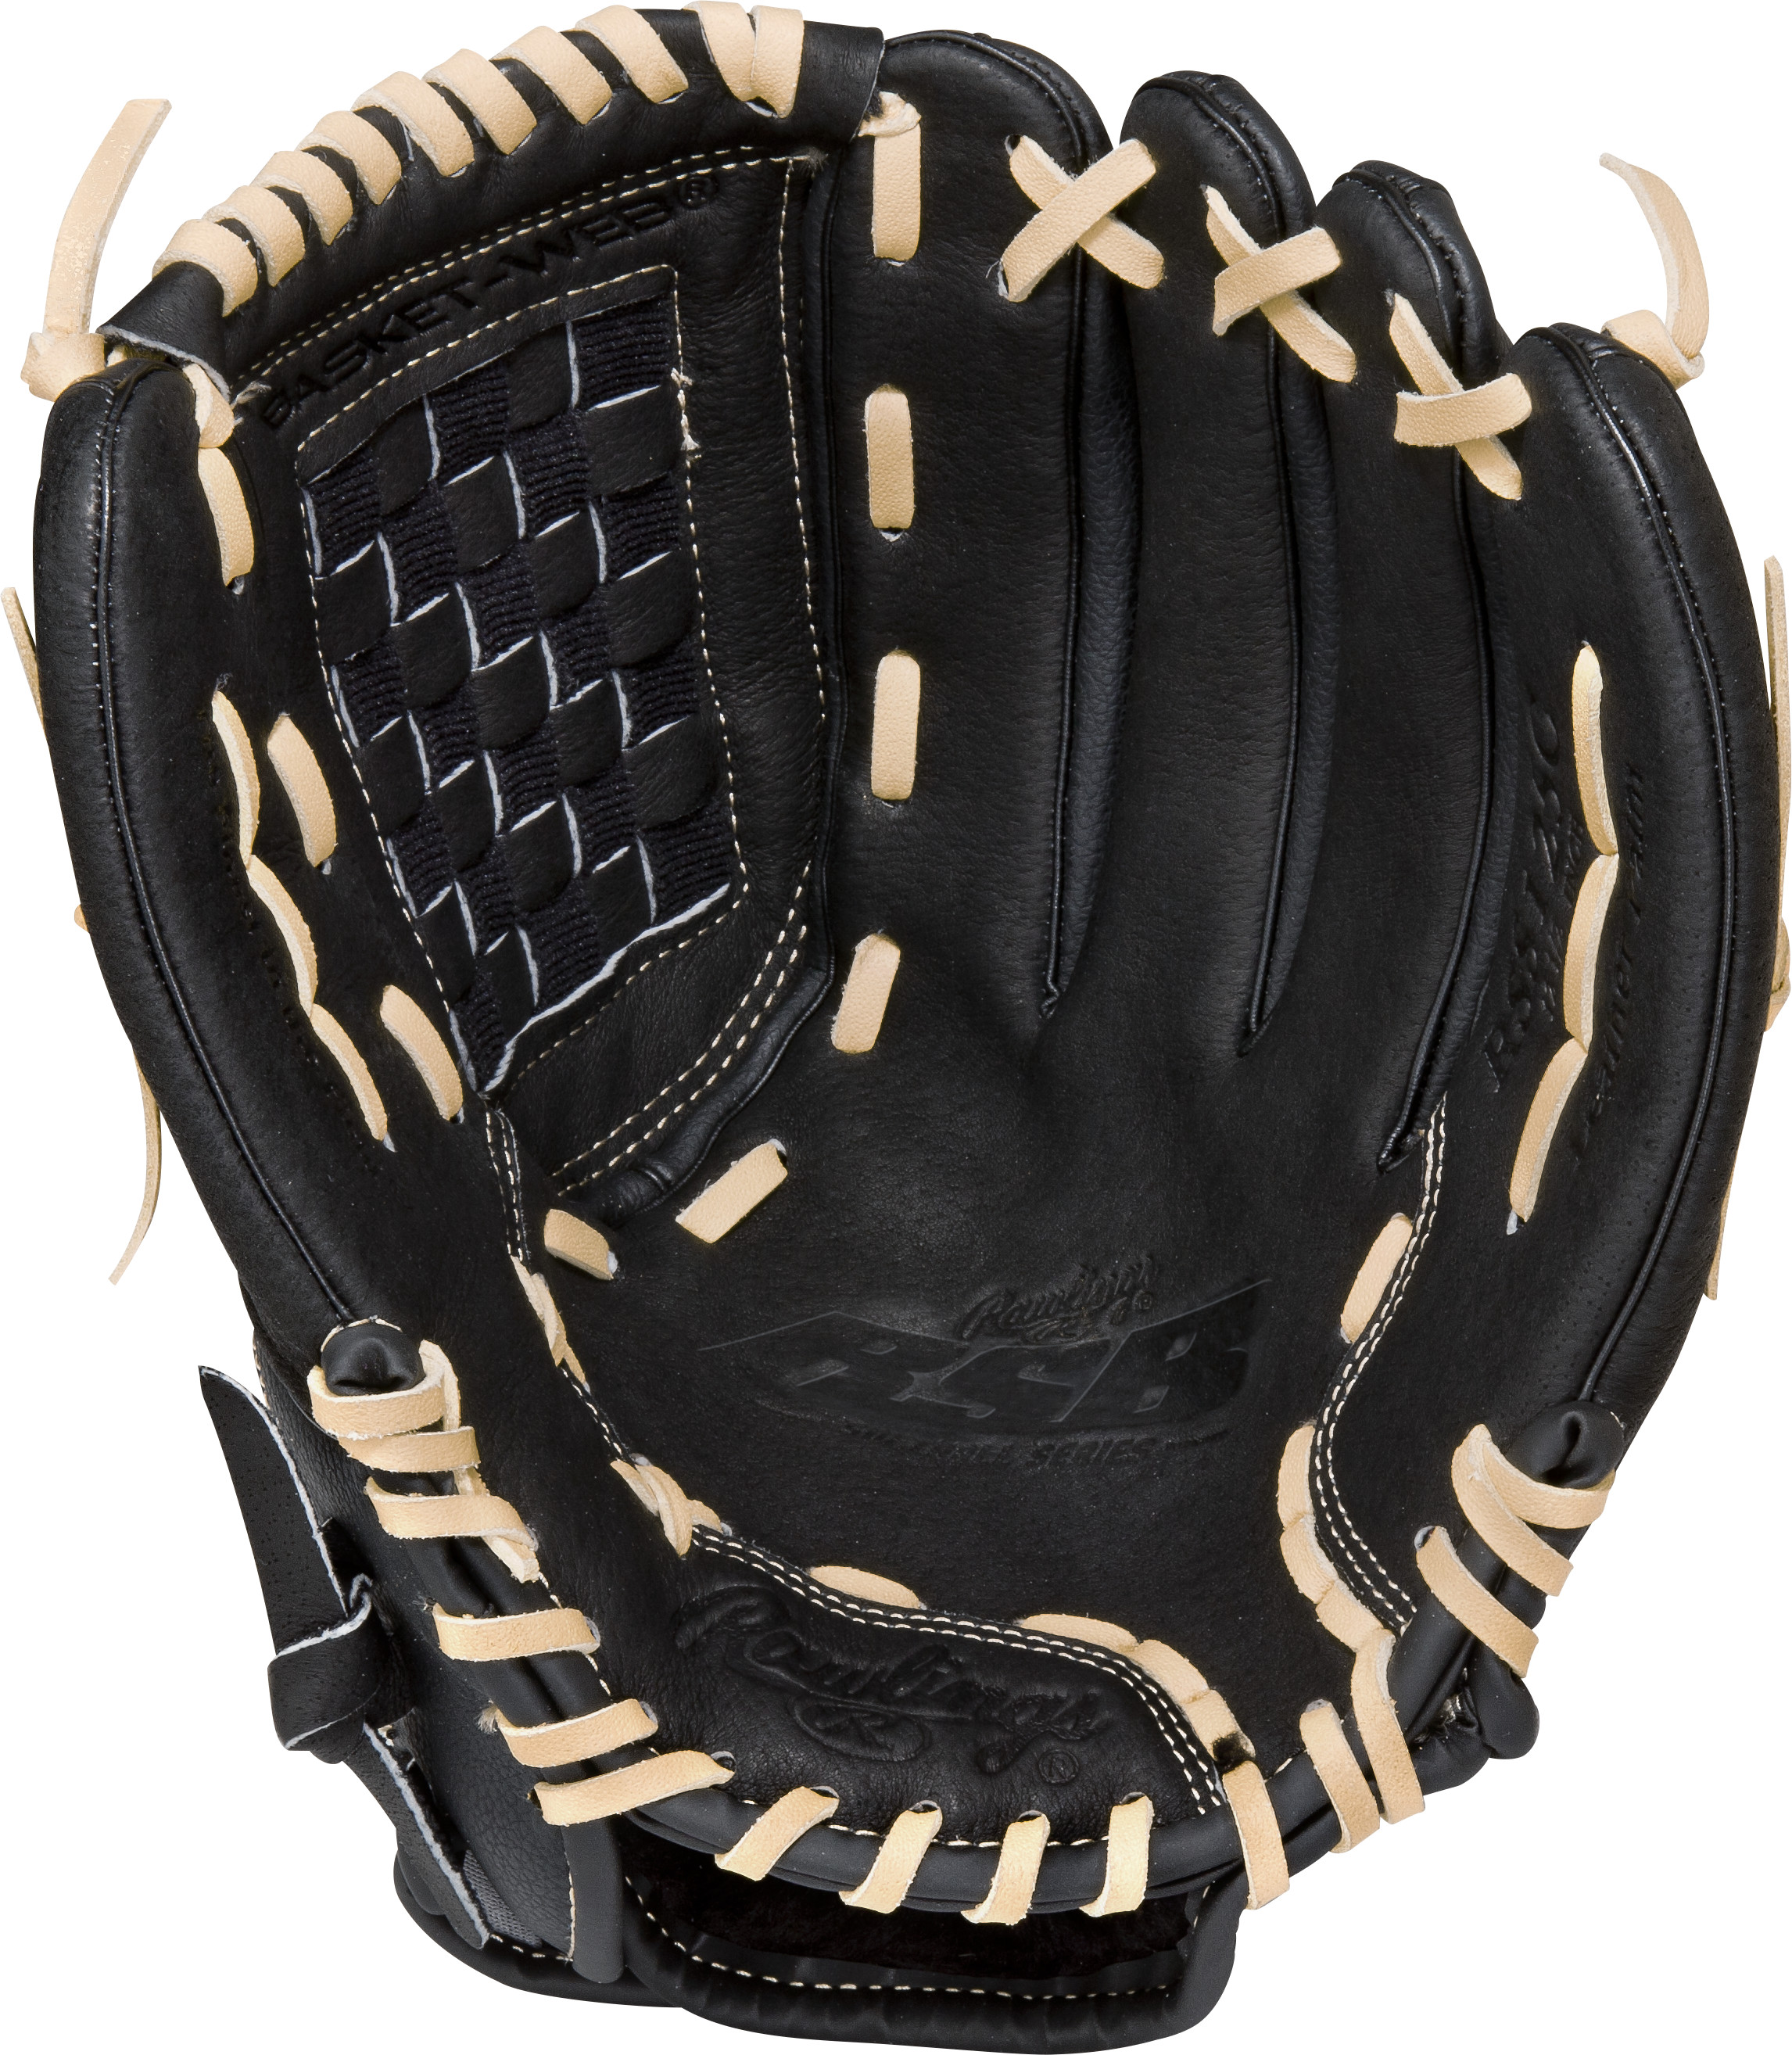 http://www.bestbatdeals.com/images/gloves/rawlings/RSS125C_palm.jpg